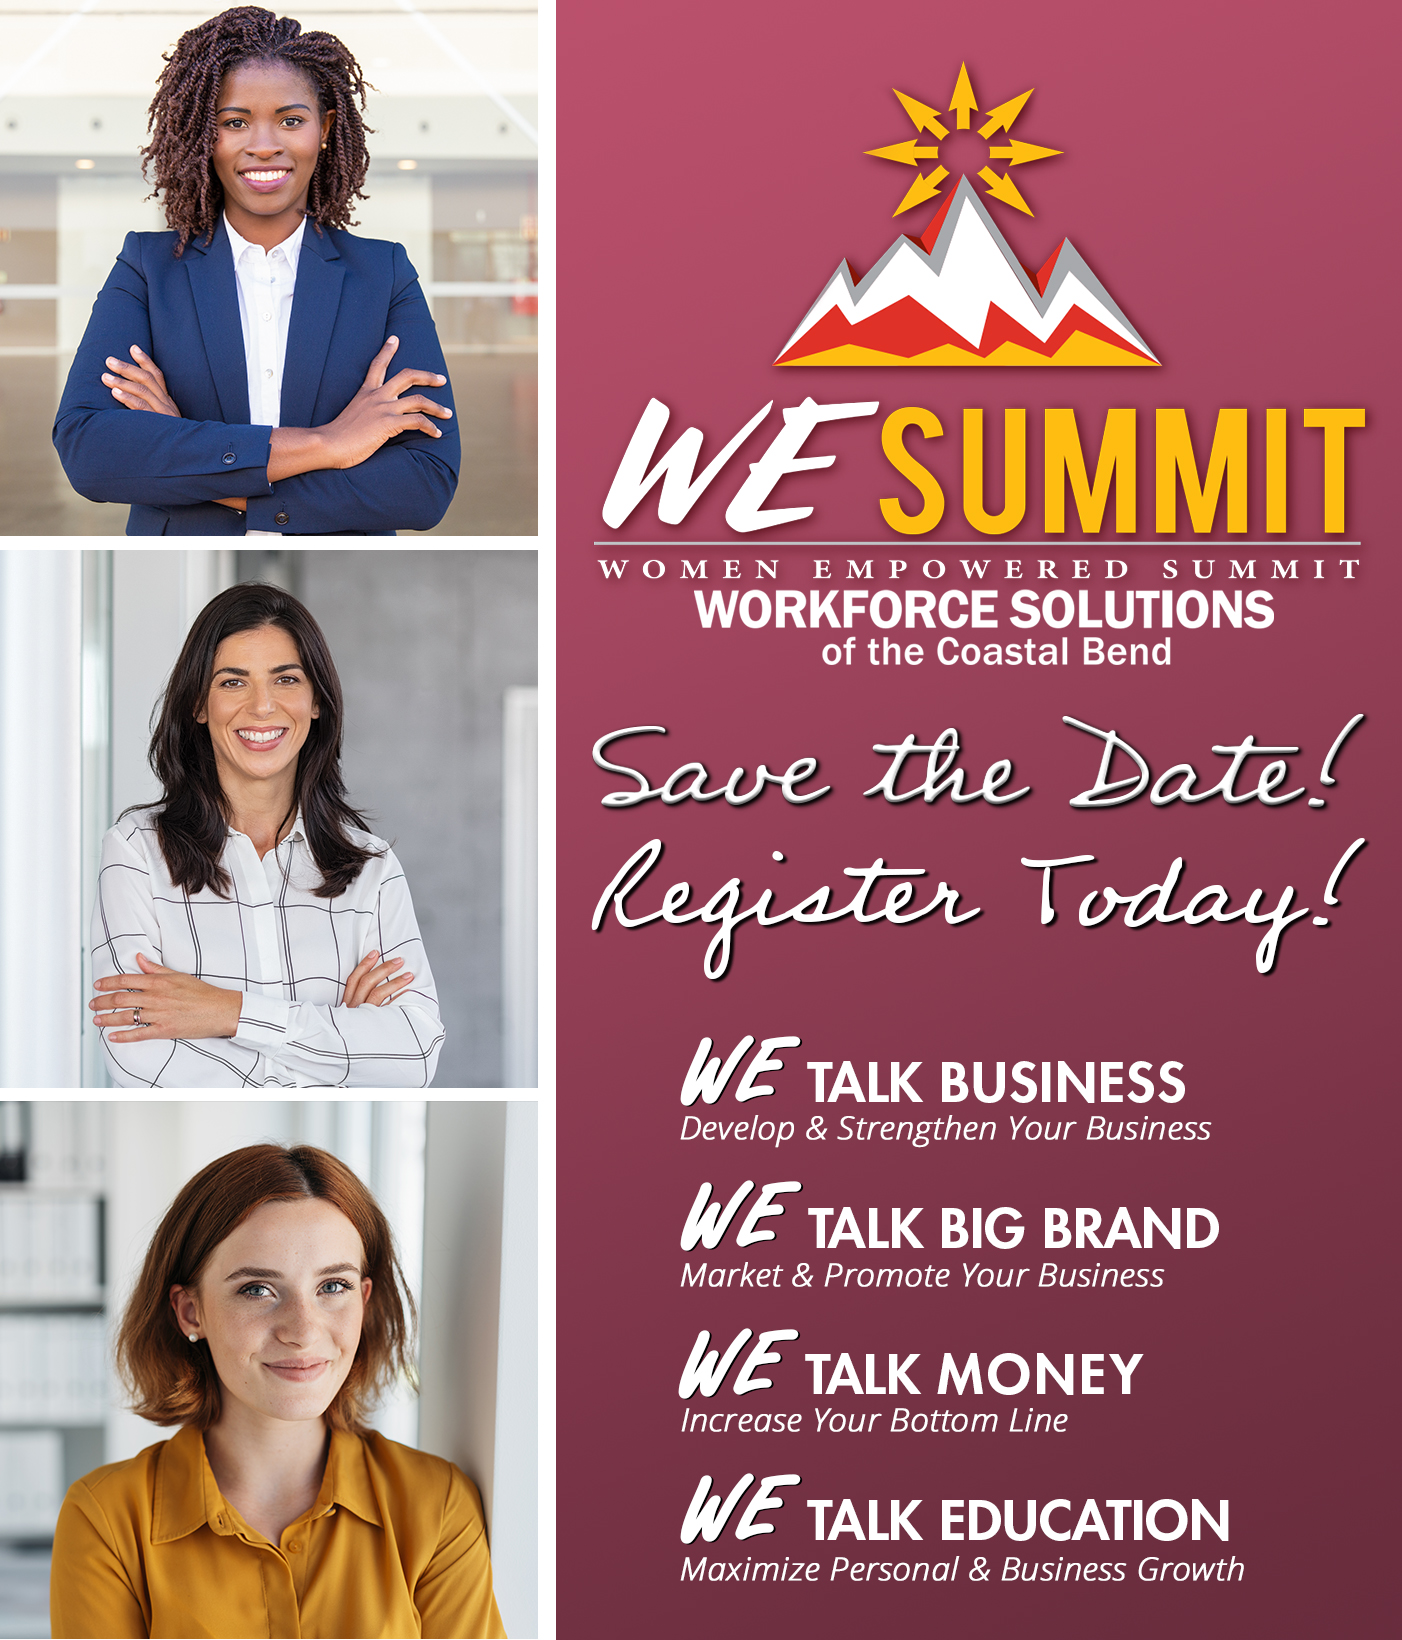 Women Empowered (WE) Summit is June 6, 2020 from 9:30 AM - 4:00 PM. Click Here for more information and to register!